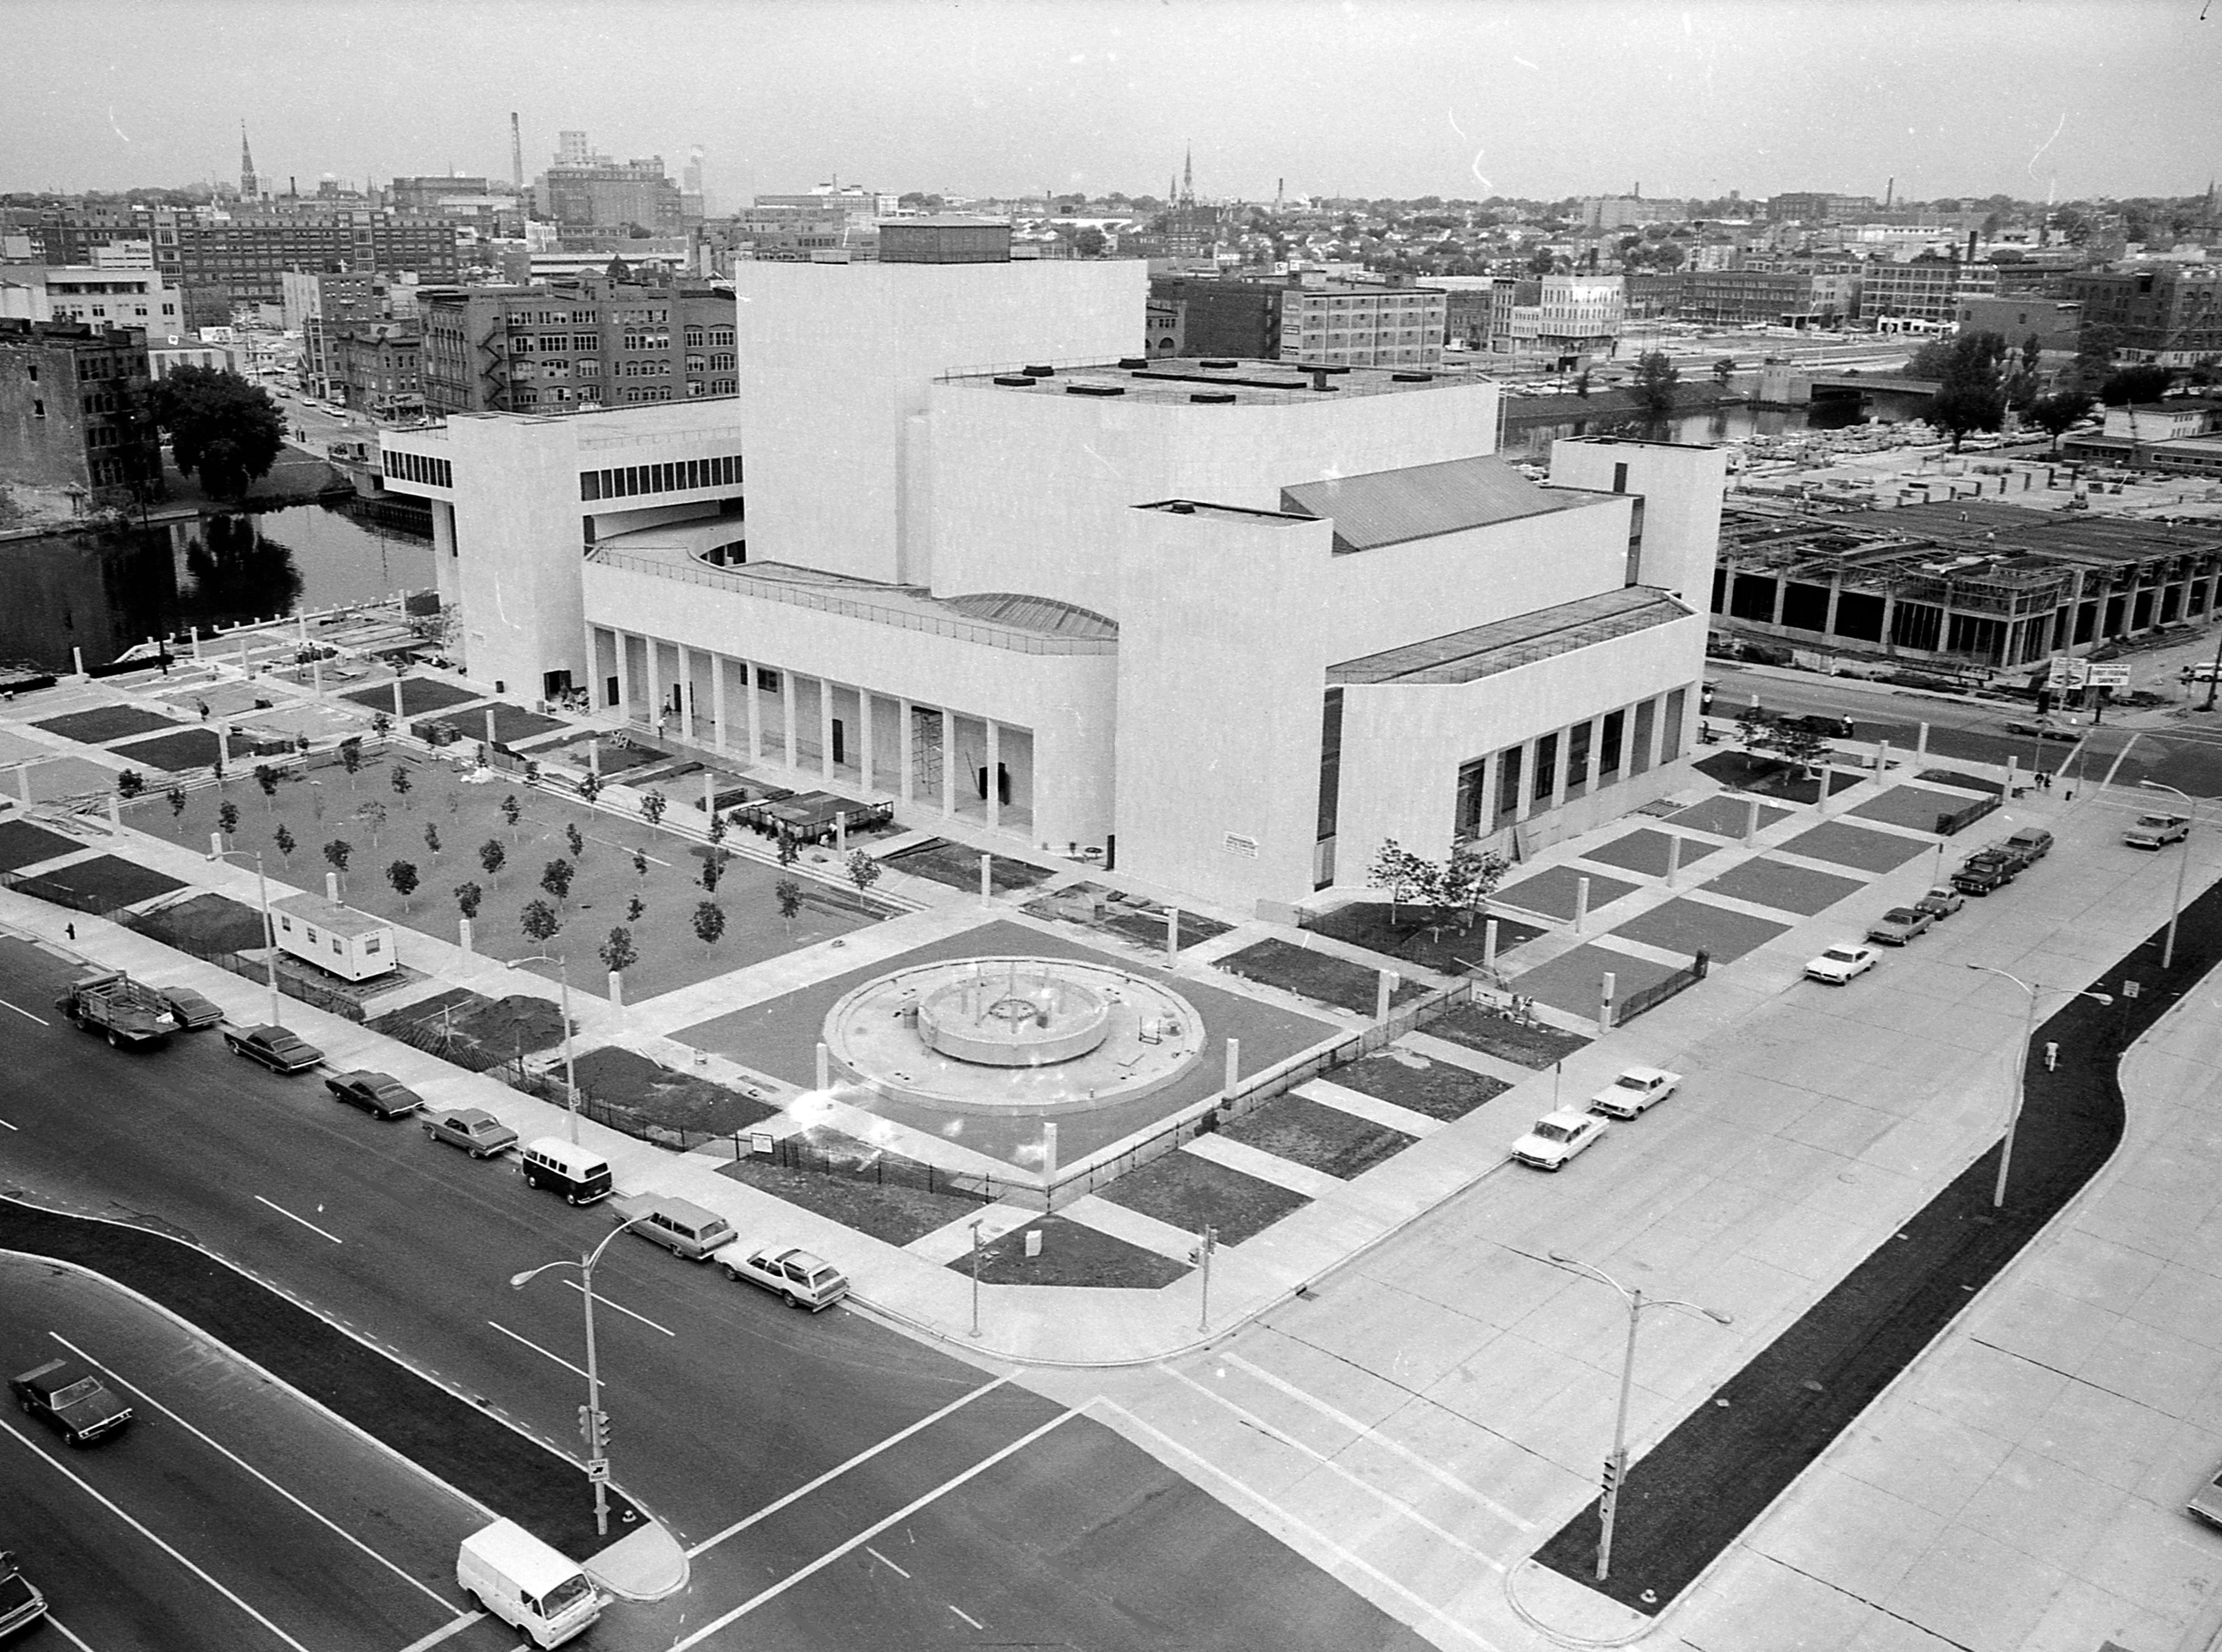 35mm film negative of the new Milwaukee Performing Arts Center (now known as the Marcus Center for the Performing Arts) or PAC at 929 N. Water St. Construction began on June 27, 1966. This photo shows the exterior looking northwest from the corner of Water St. and Kilbourn Ave.   Photo was filed 10/7/1969 Neg #69546 exterior, building, music, performance, stage, theater, Uihlein Hall, Todd Wehr hall, Peck Pavilion.